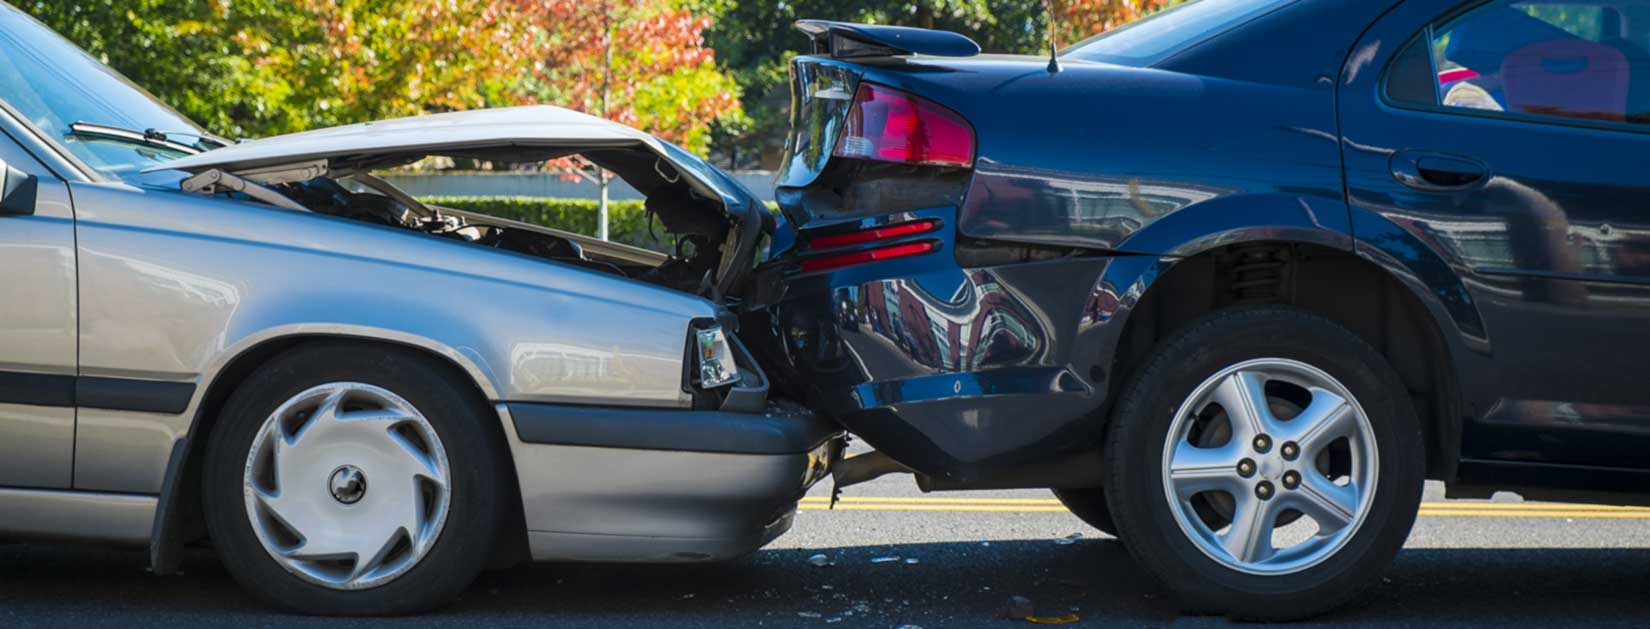 What Are the Risks of Needing a Car Accident Lawyer in Gilbert, AZ in 2019?